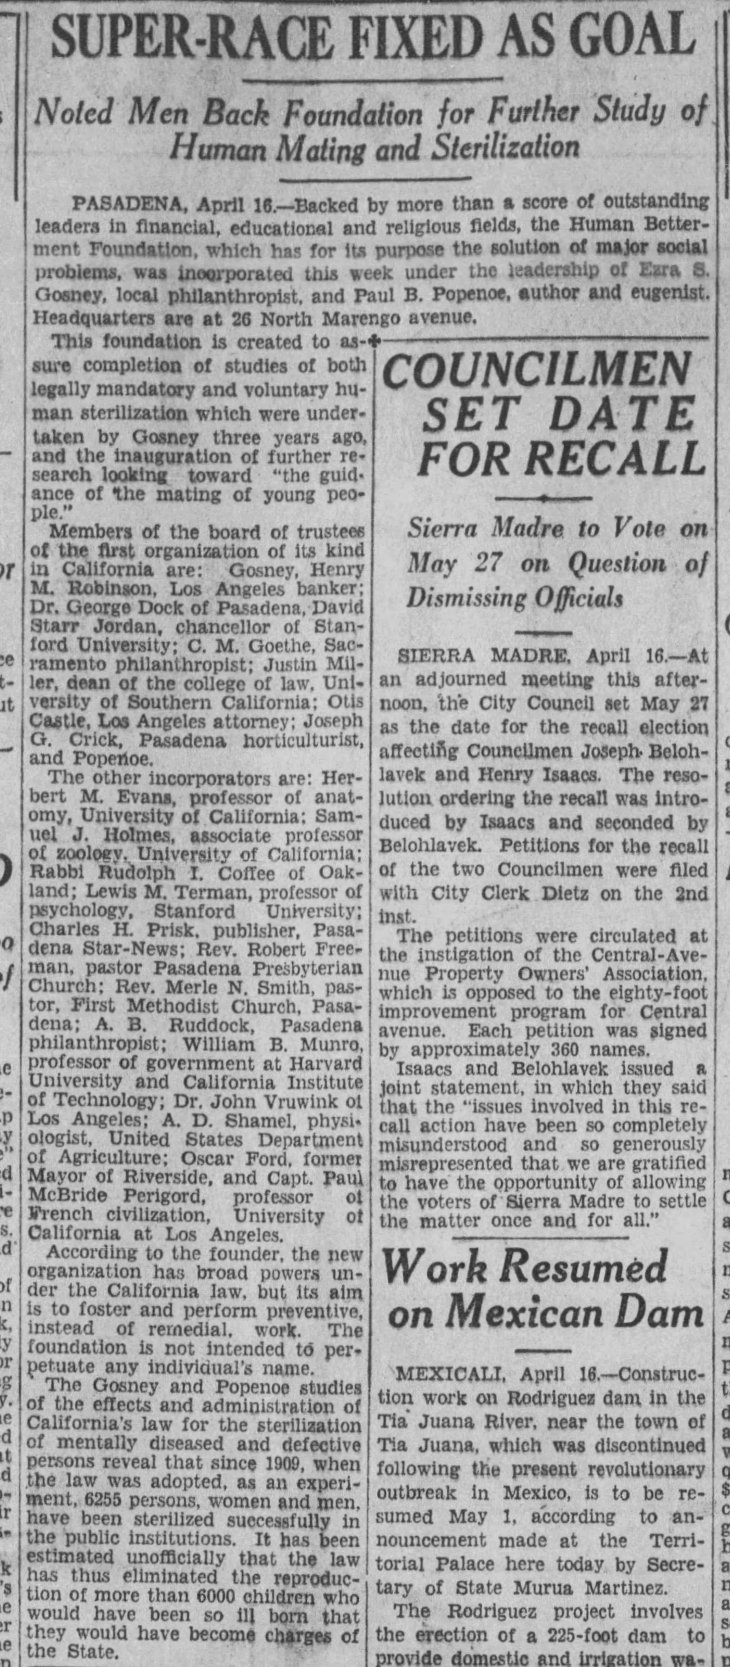 Human Betterment Foundatio incorporation The_Los_Angeles_Times_Wed__Apr_17__1929_